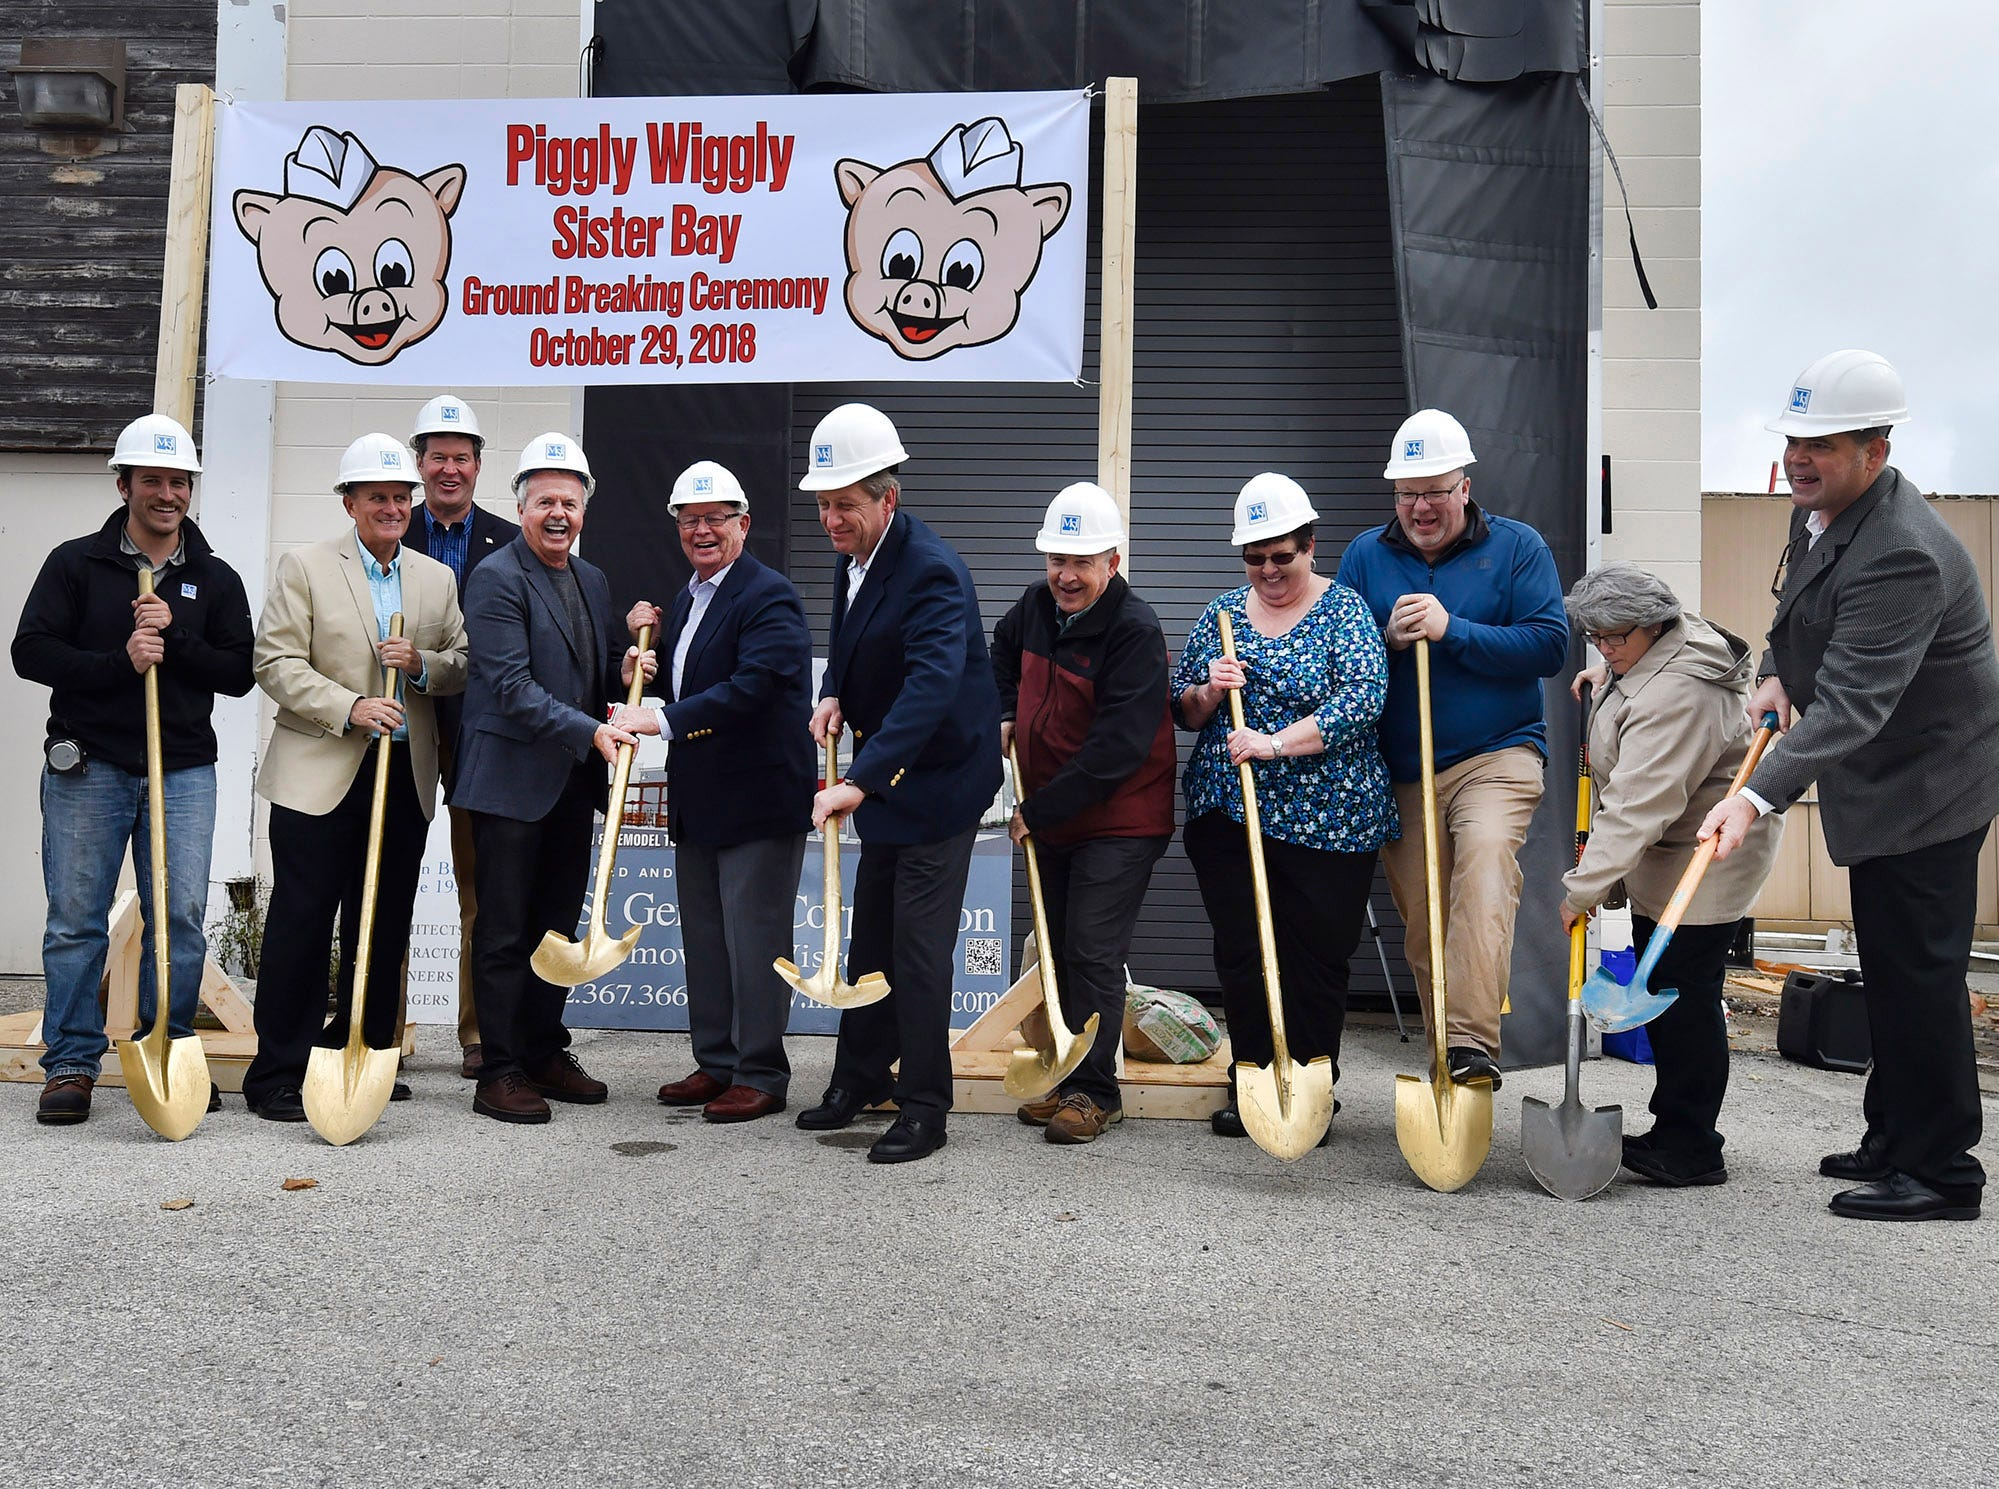 Piggly Wiggly and Sister Bay representatives take part in a ground-breaking ceremony at Piggy Wiggly Sister Bay, 10576 Country Walk Drive, on Oct. 29, 2018. After the expansion project is completed, the store will increase in size by about 70 percent. Tina M. Gohr/USA TODAY NETWORK-Wisconsin